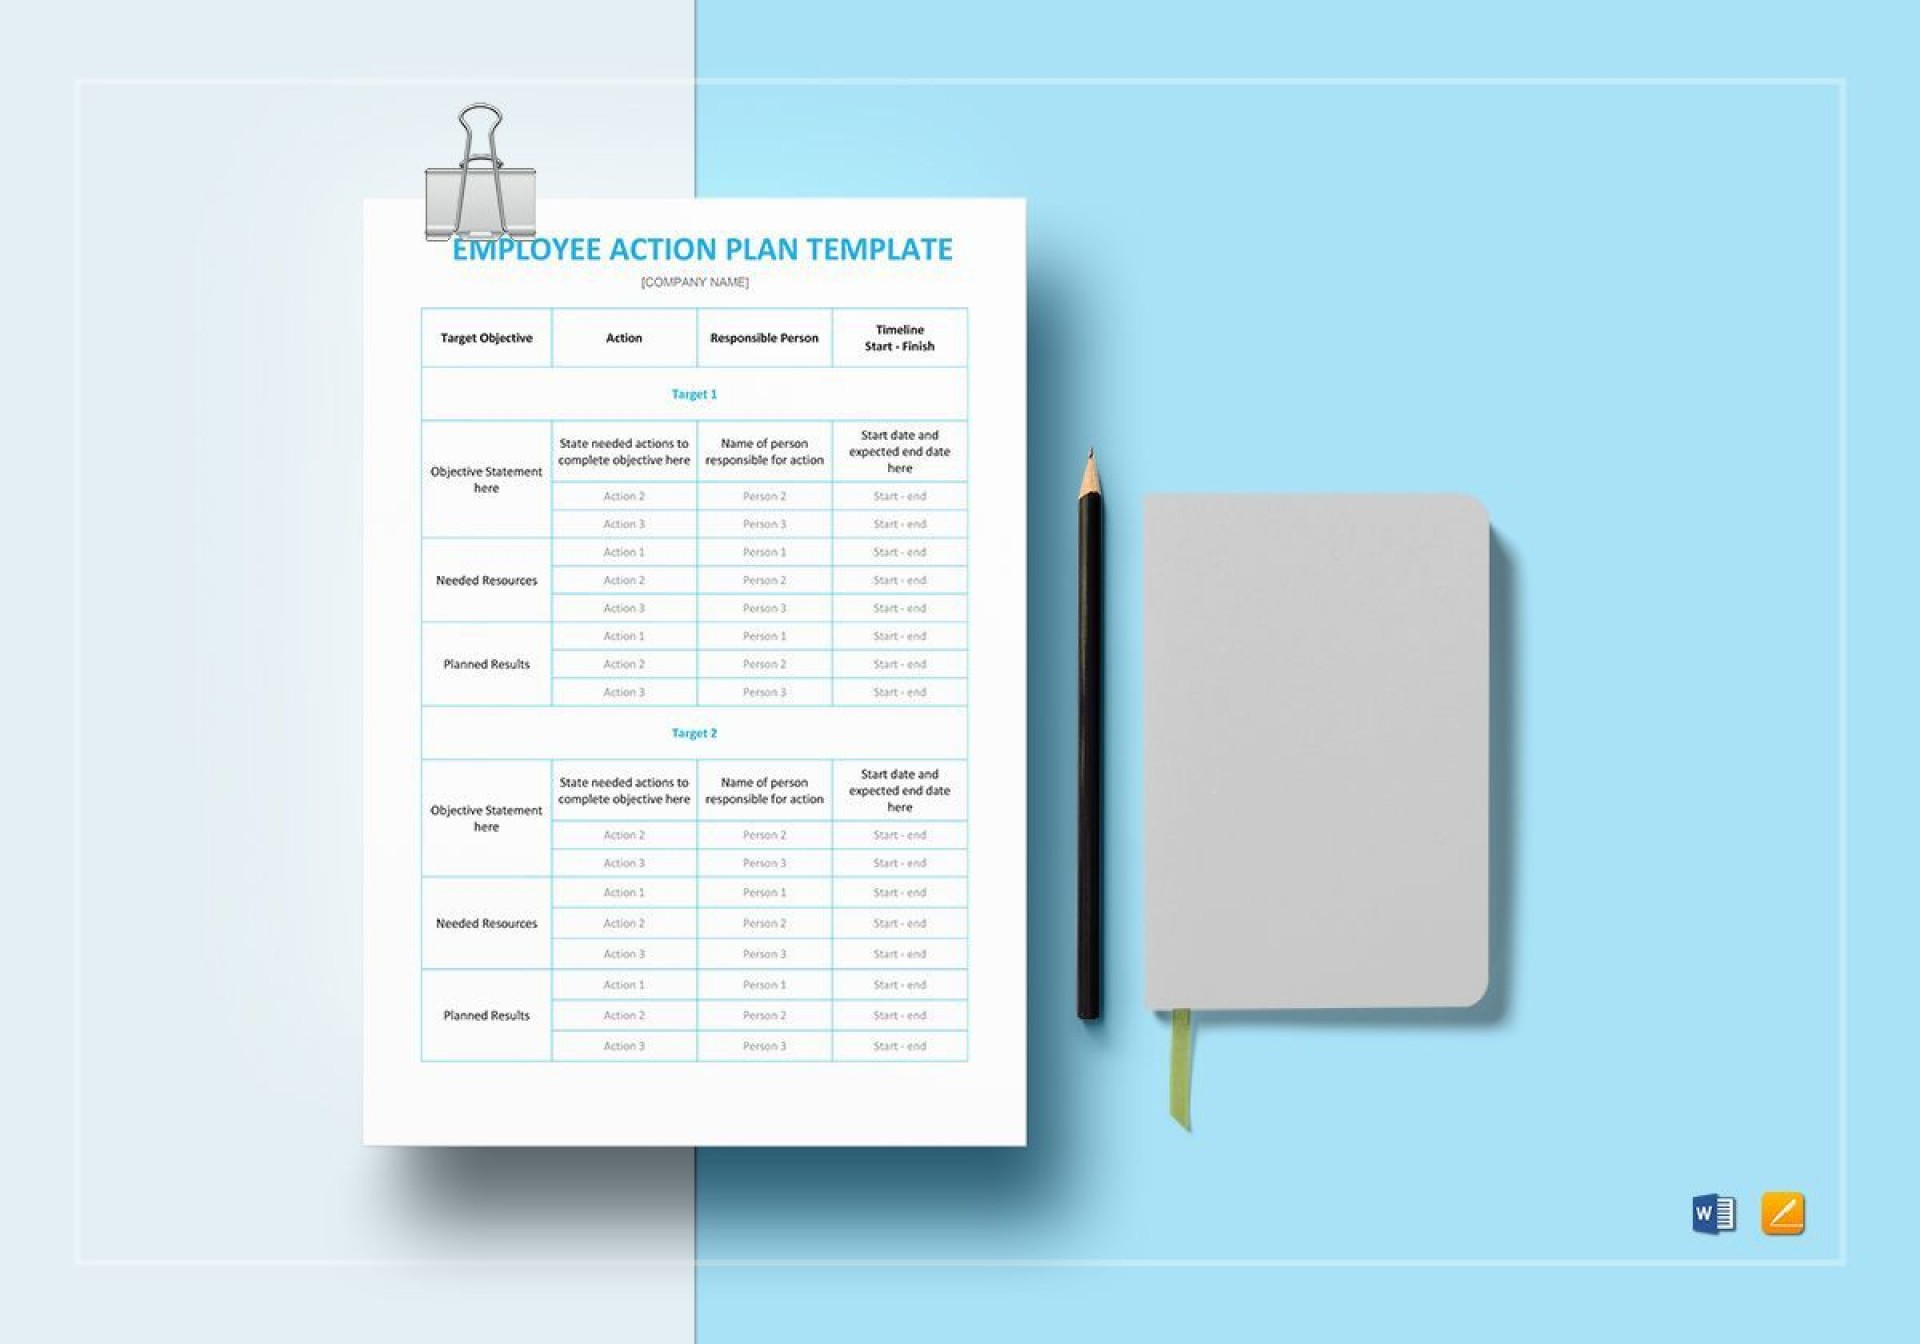 008 Frightening Action Plan Template Word High Resolution  Corrective Free Format Sample1920